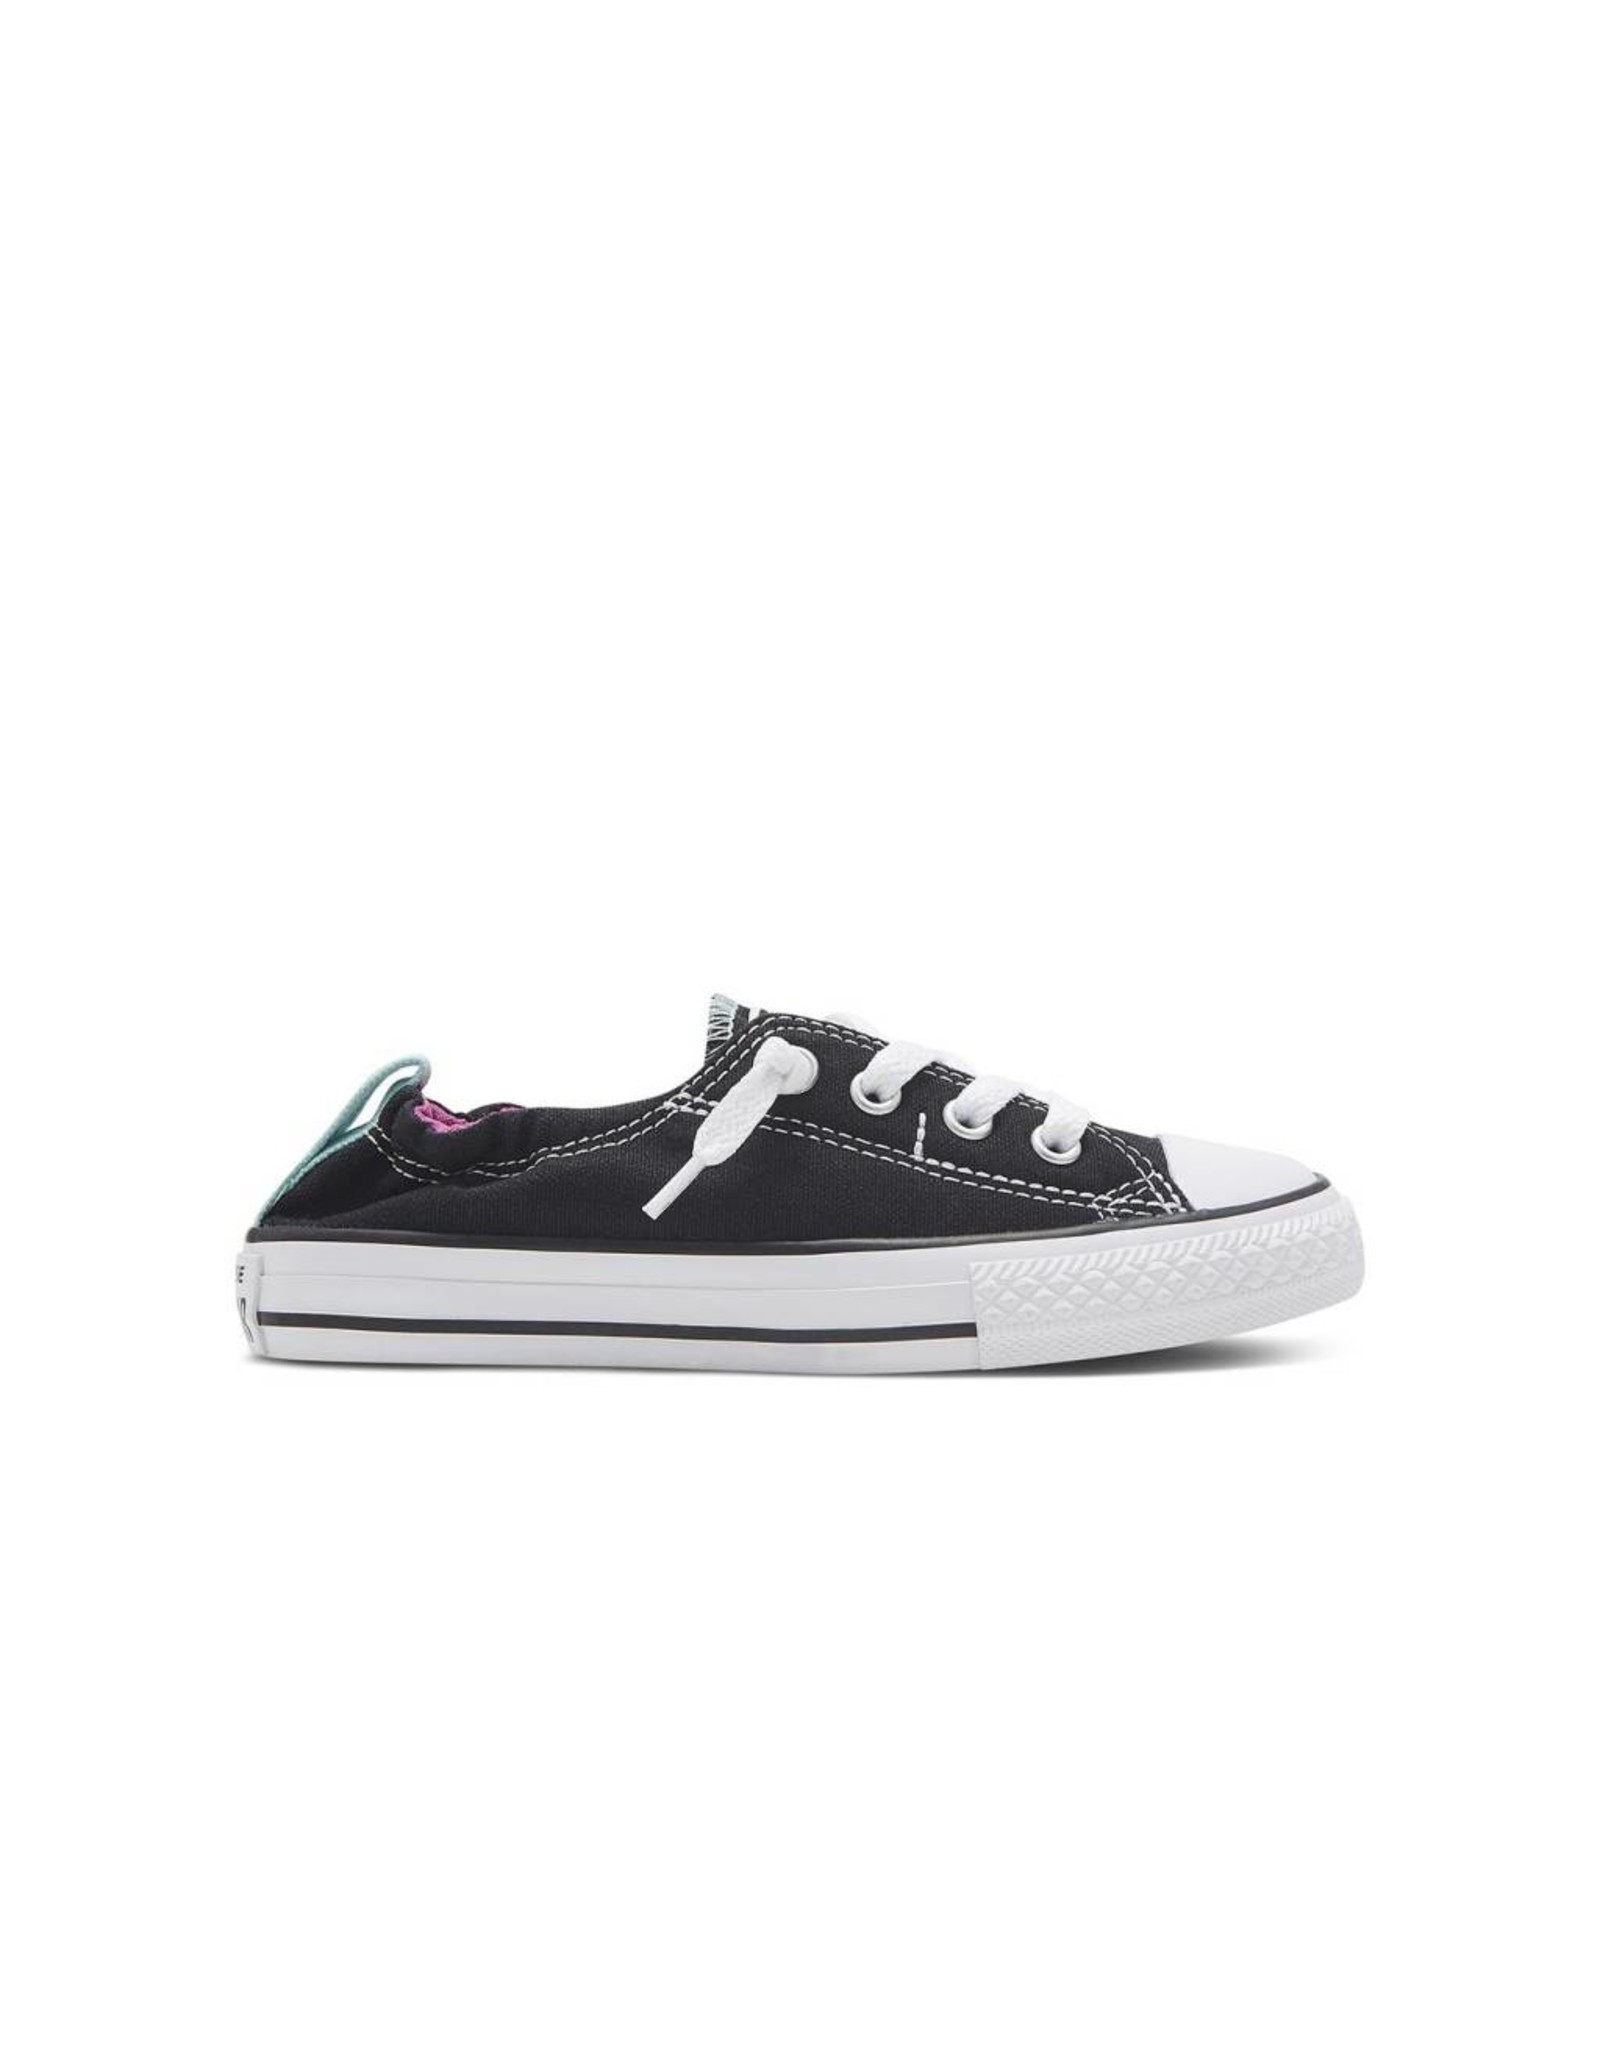 CONVERSE CHUCK TAYLOR ALL STAR SHORELINE SLIP BLACK MOTEL POOL CVSMO-651752C